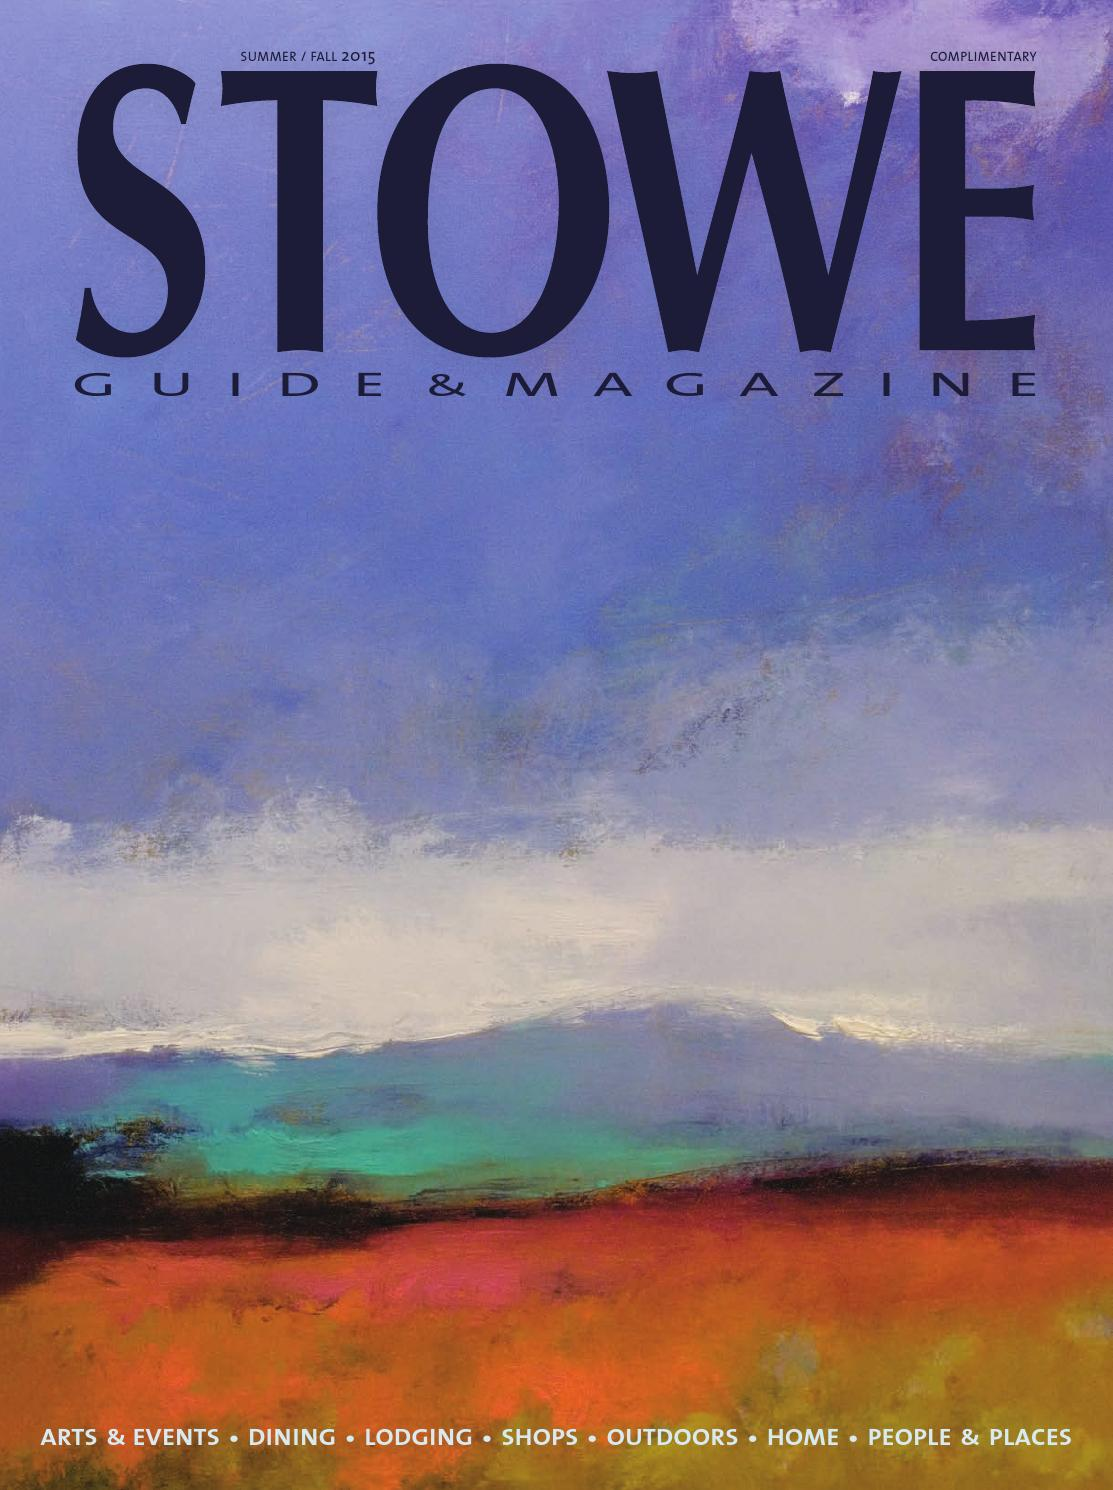 Stowe Guide & Magazine Summer/Fall 2015 by Stowe Guide & Magazine - issuu